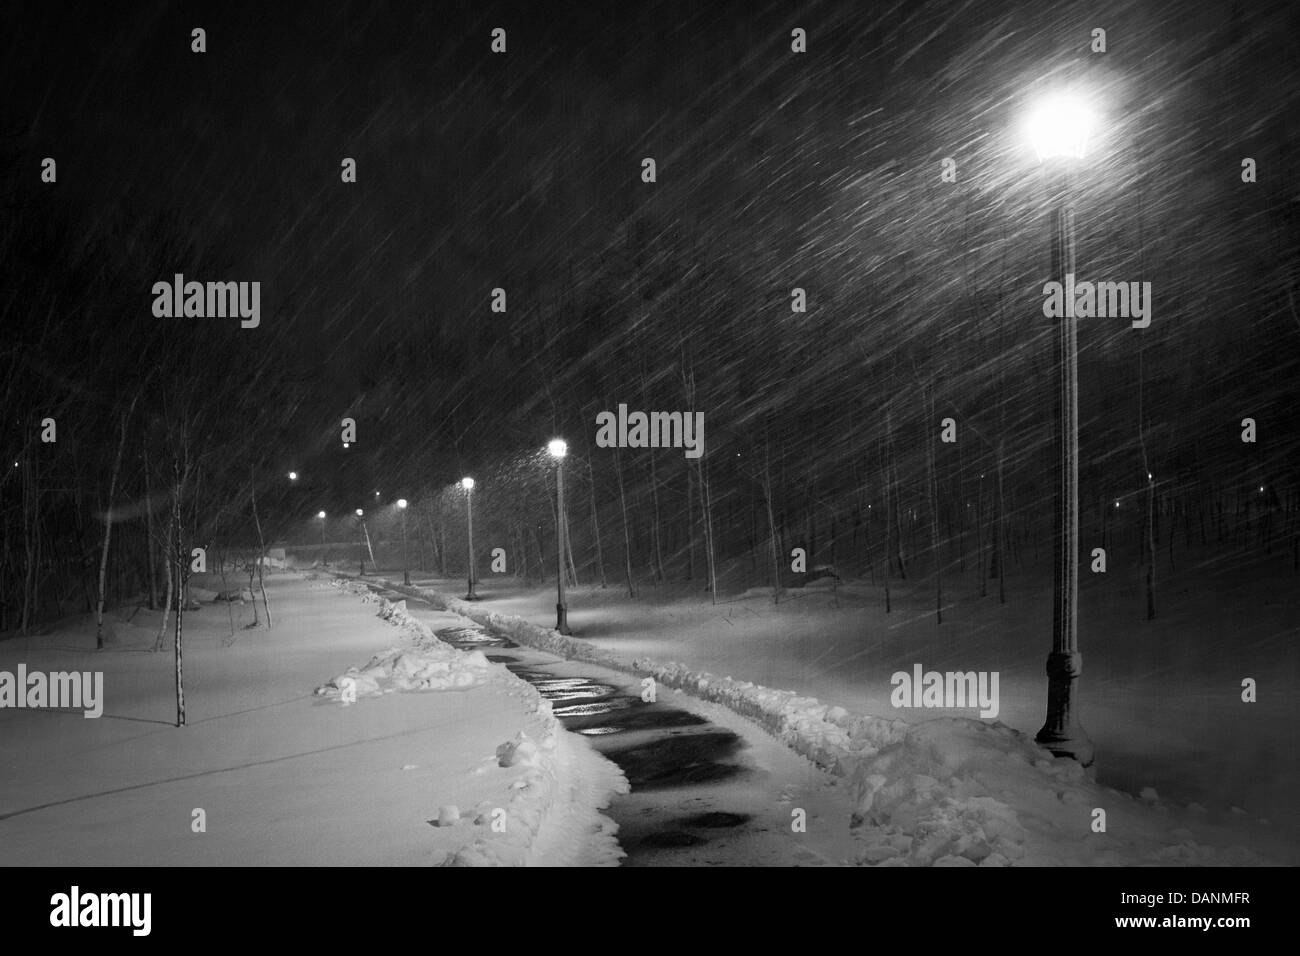 Snow blows across a lighted path at night. - Stock Image